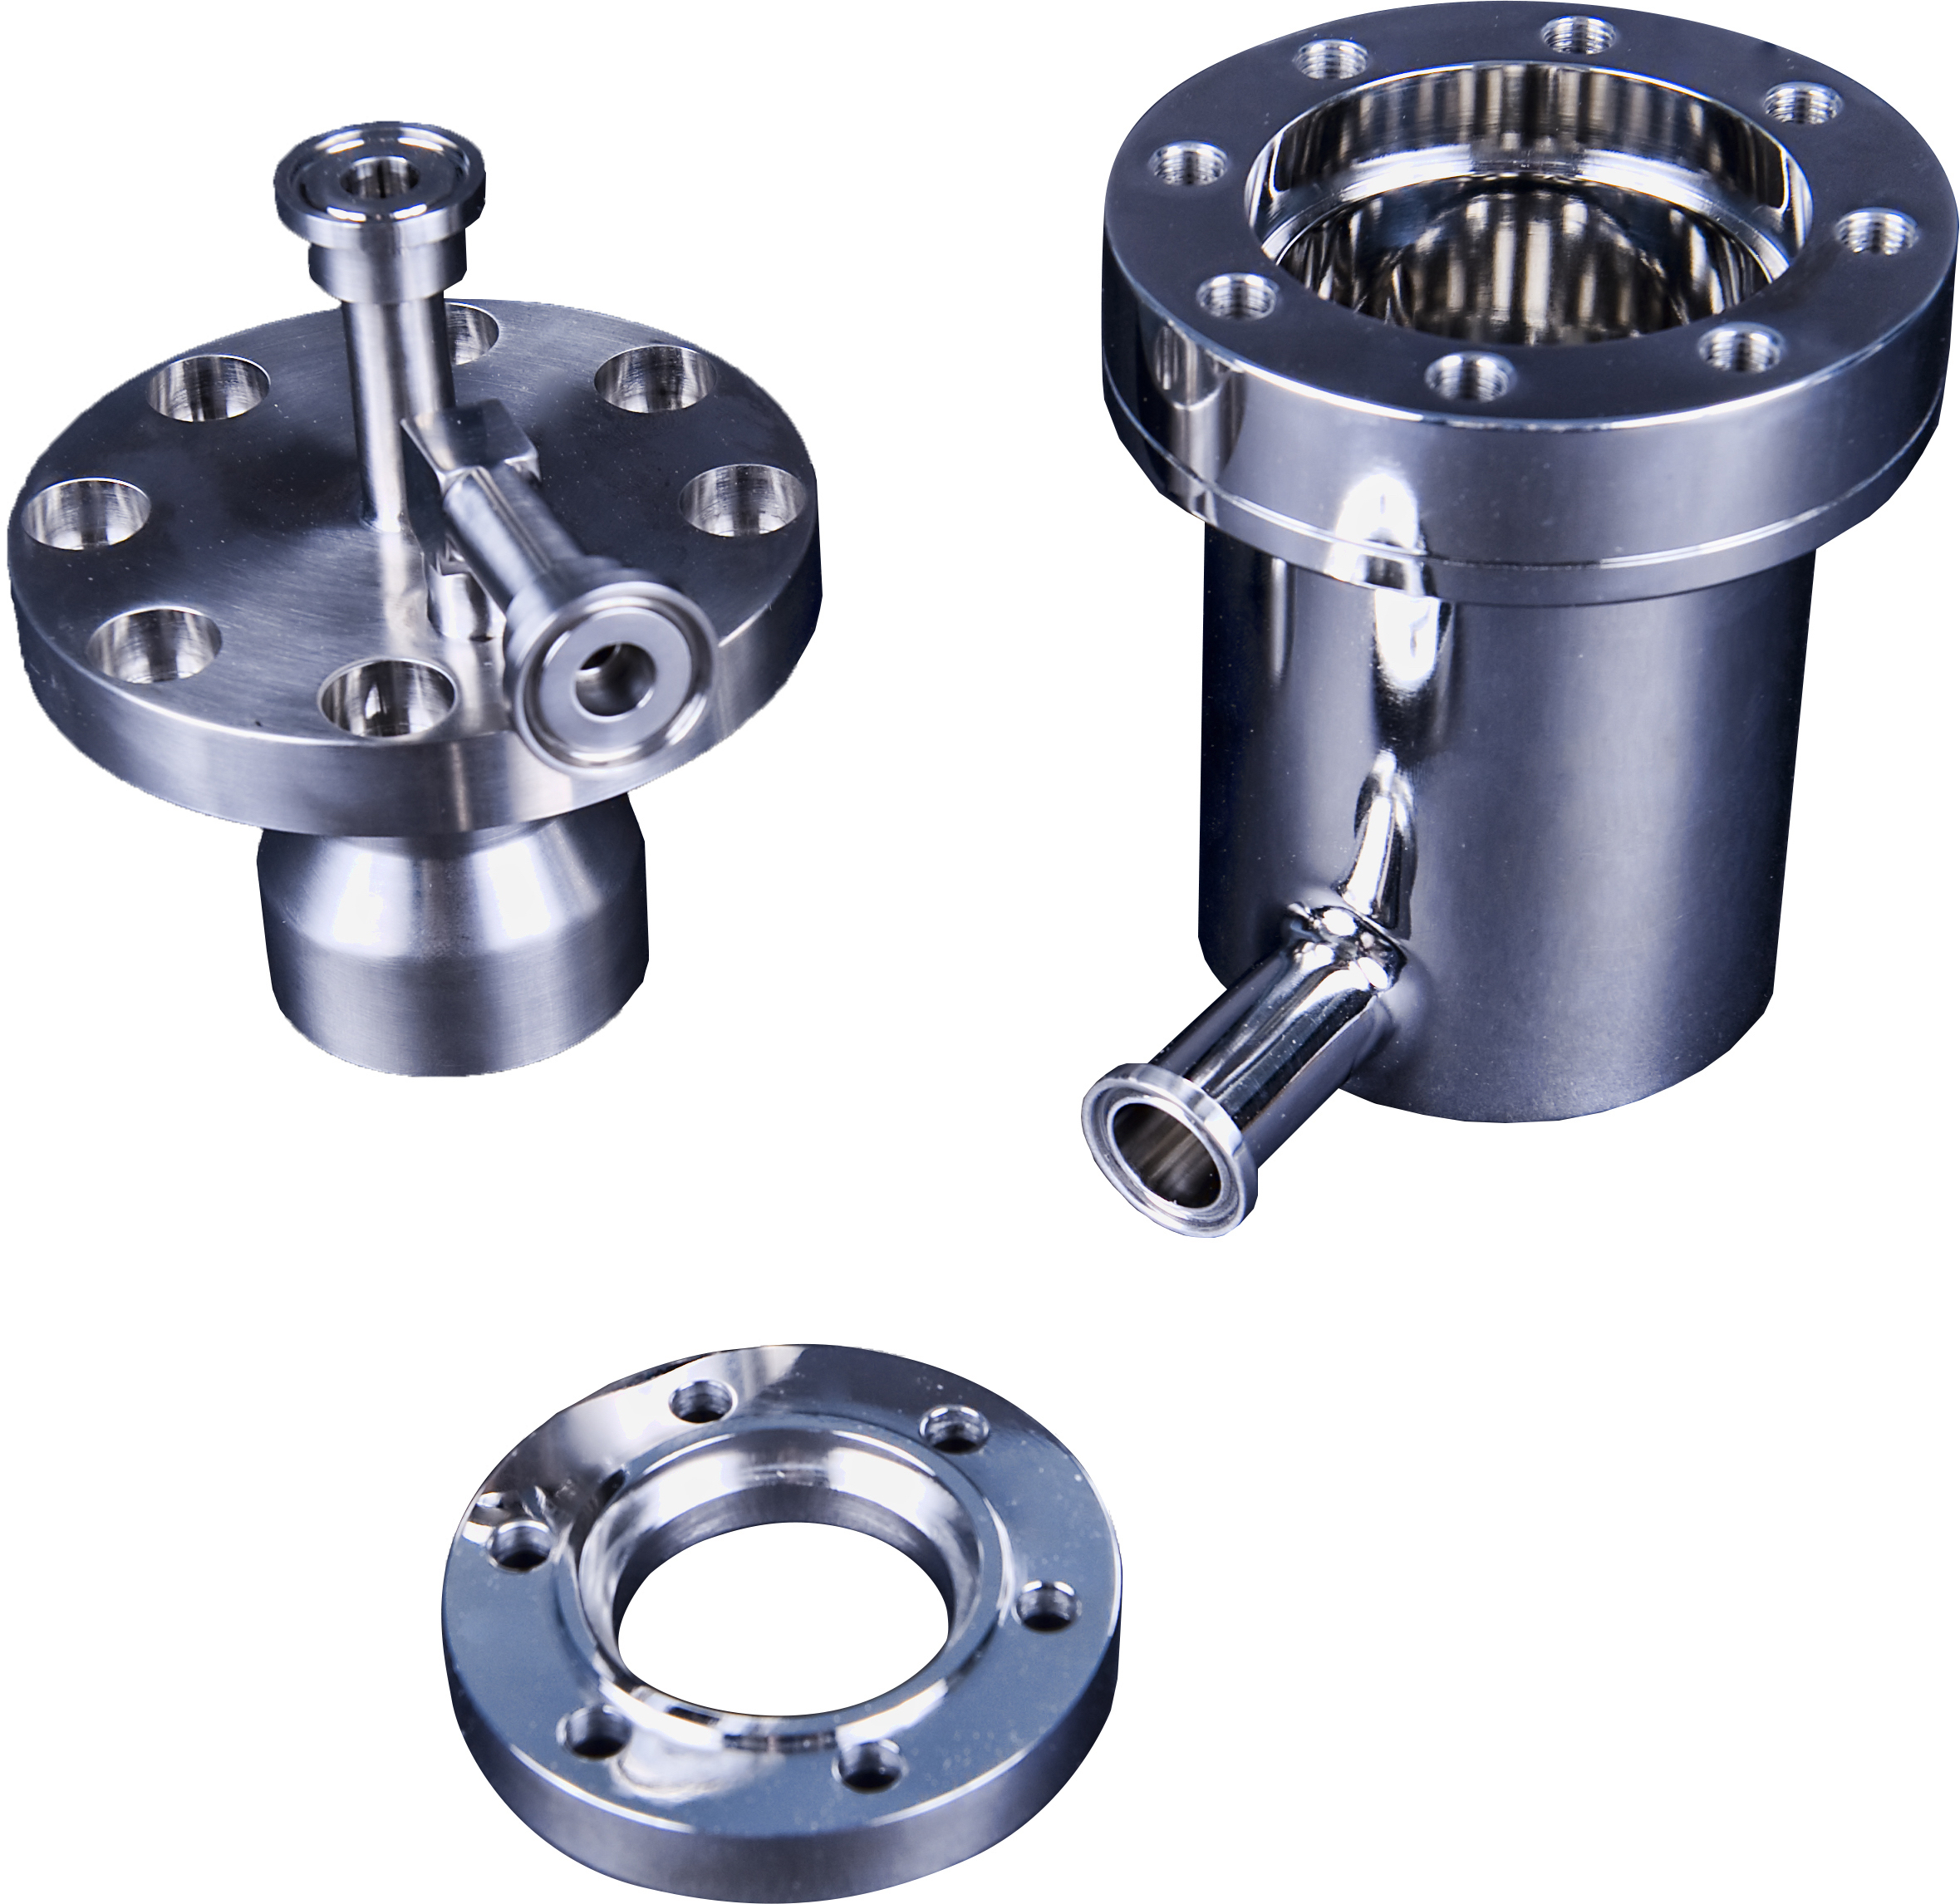 Our components for ASME stainless steel tanks are made to stainless steel ASME code requirements.